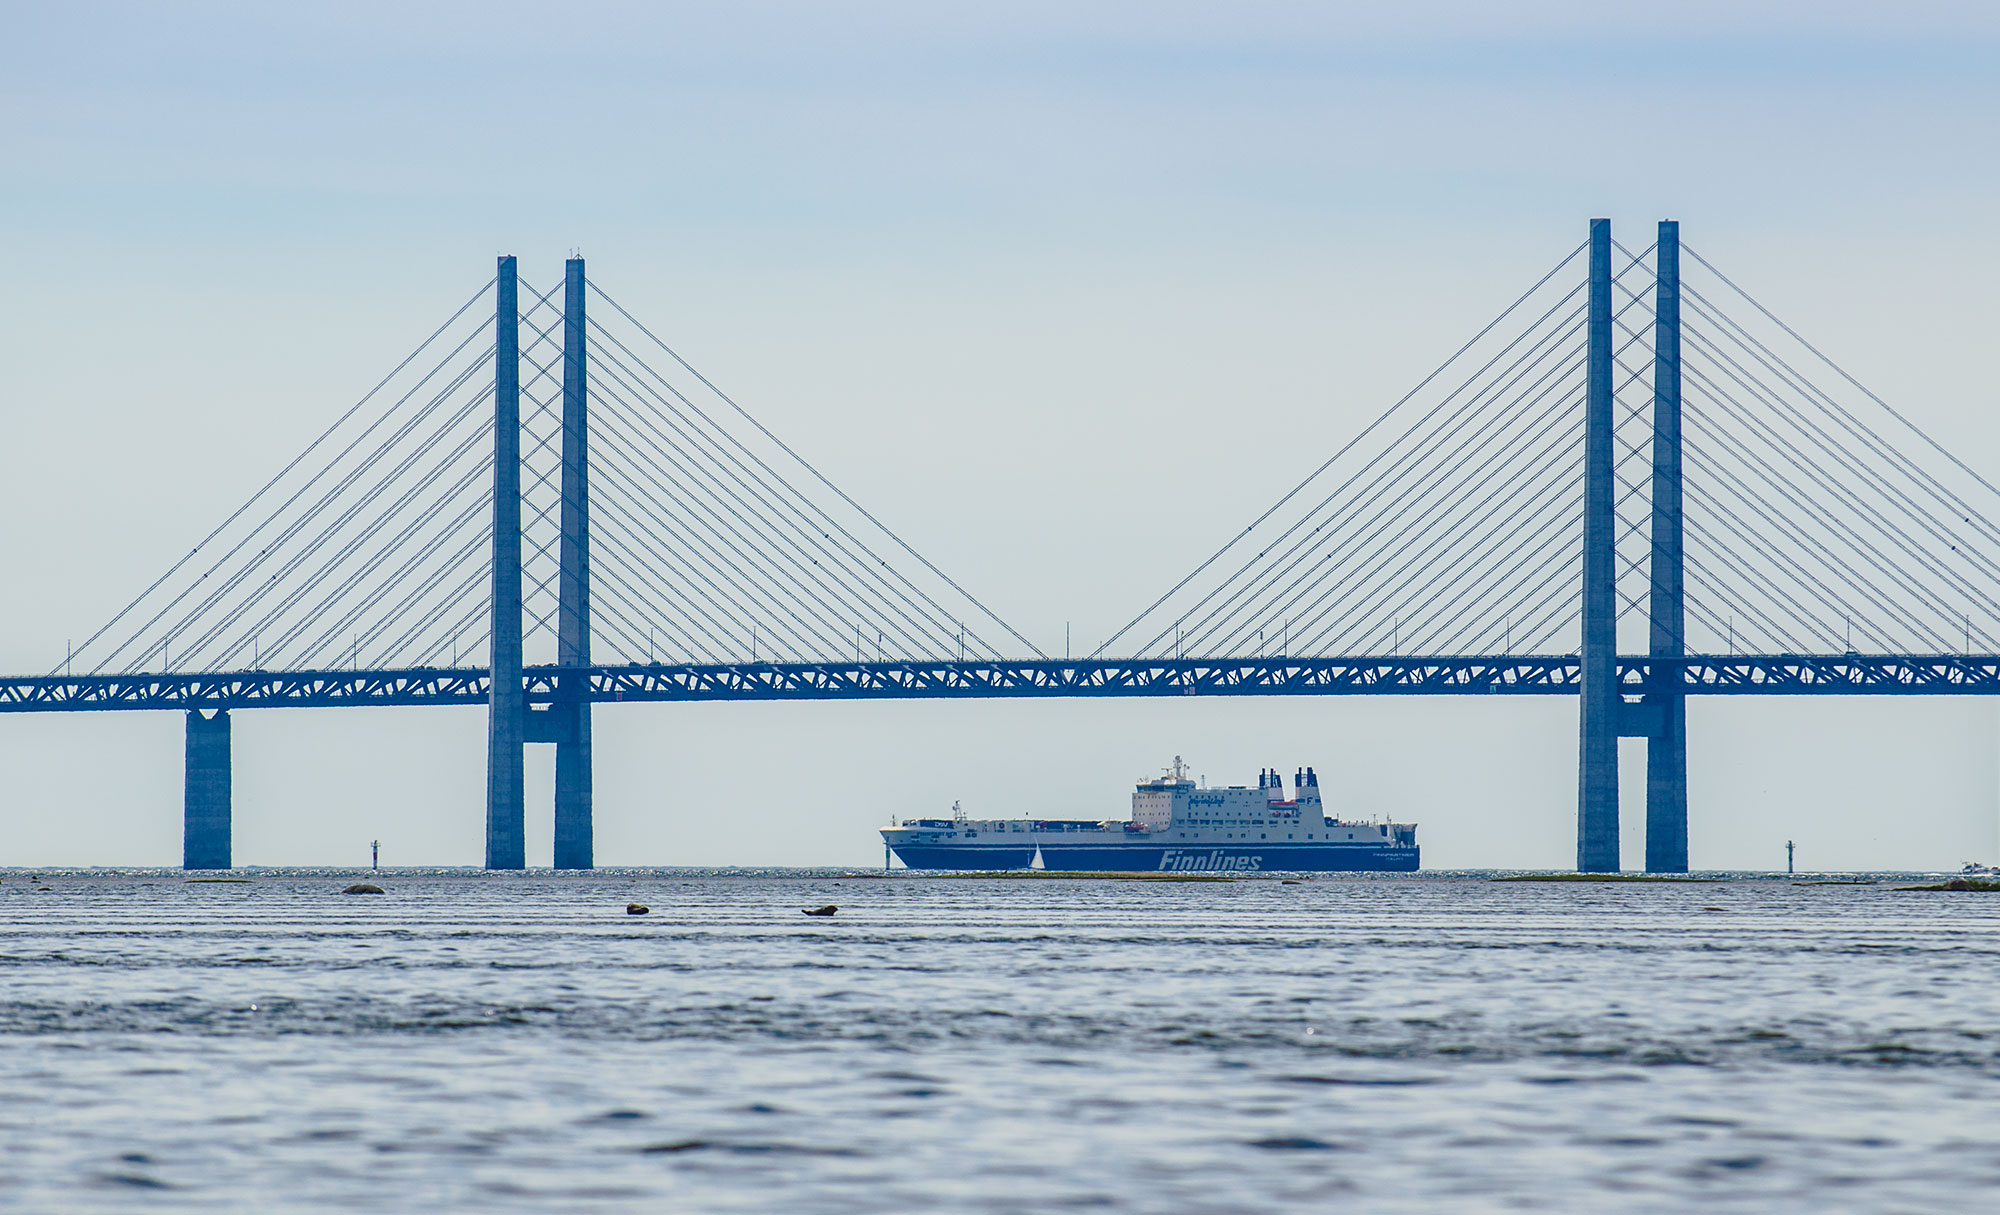 Ship under Oresund Bridge, saltholm, Peberholm, denmark